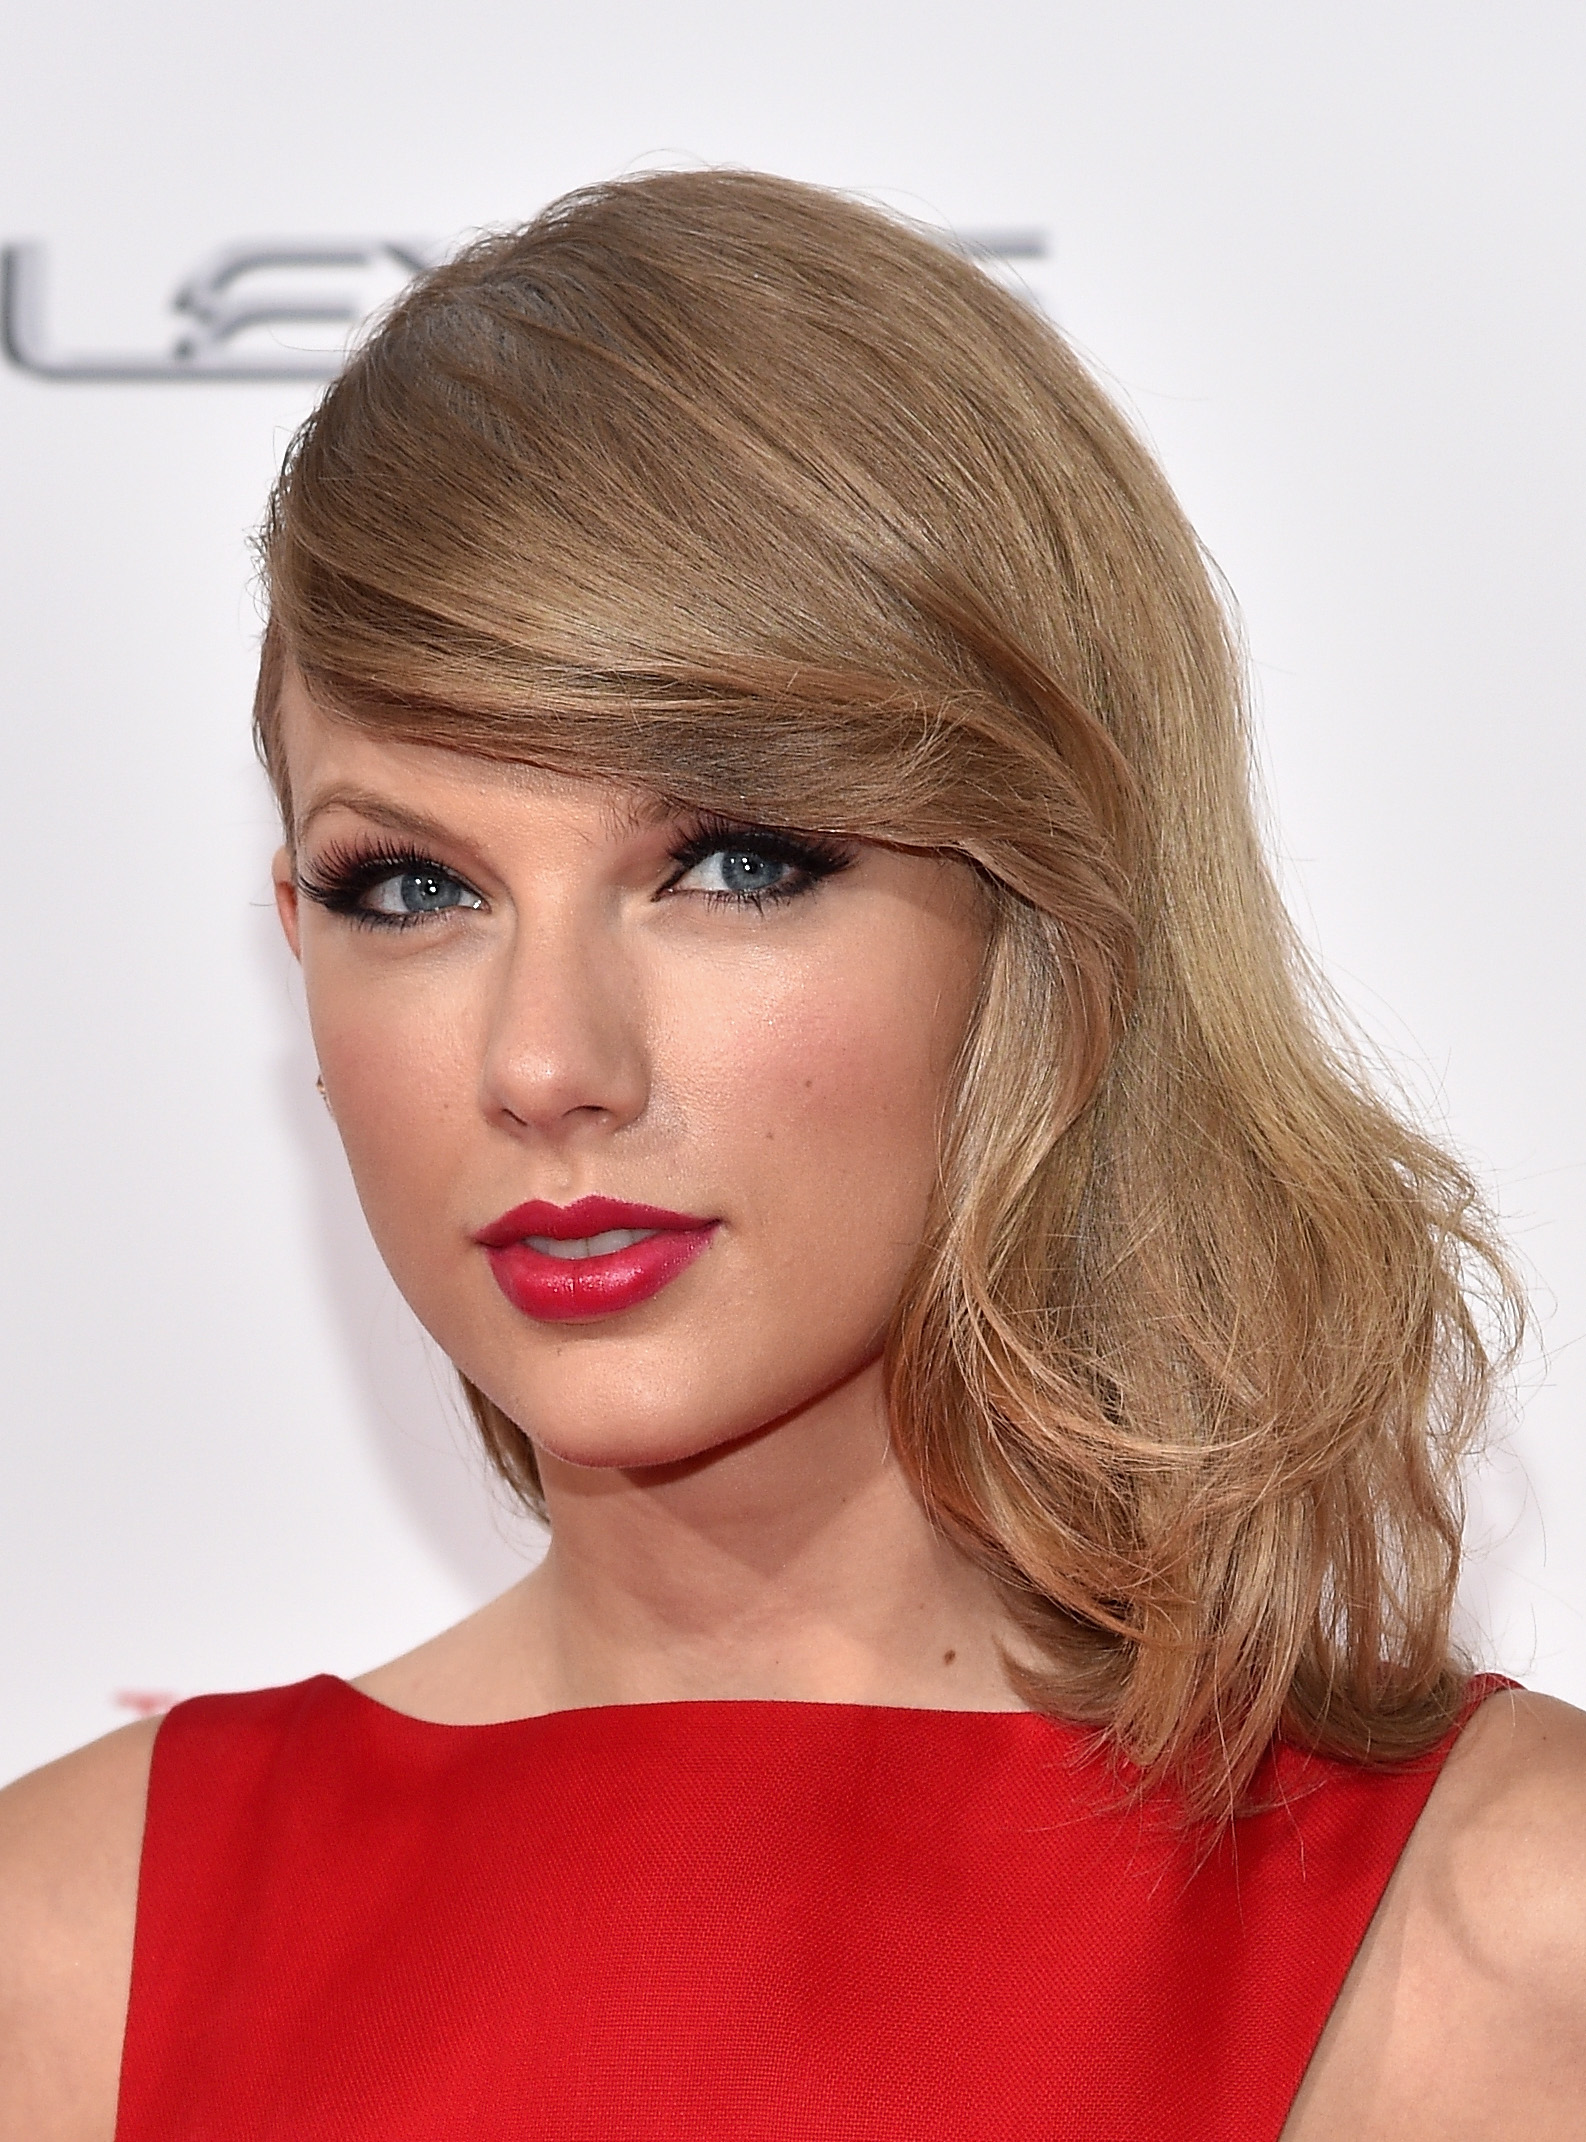 Taylor swift gets mean when virgins dump her new pics